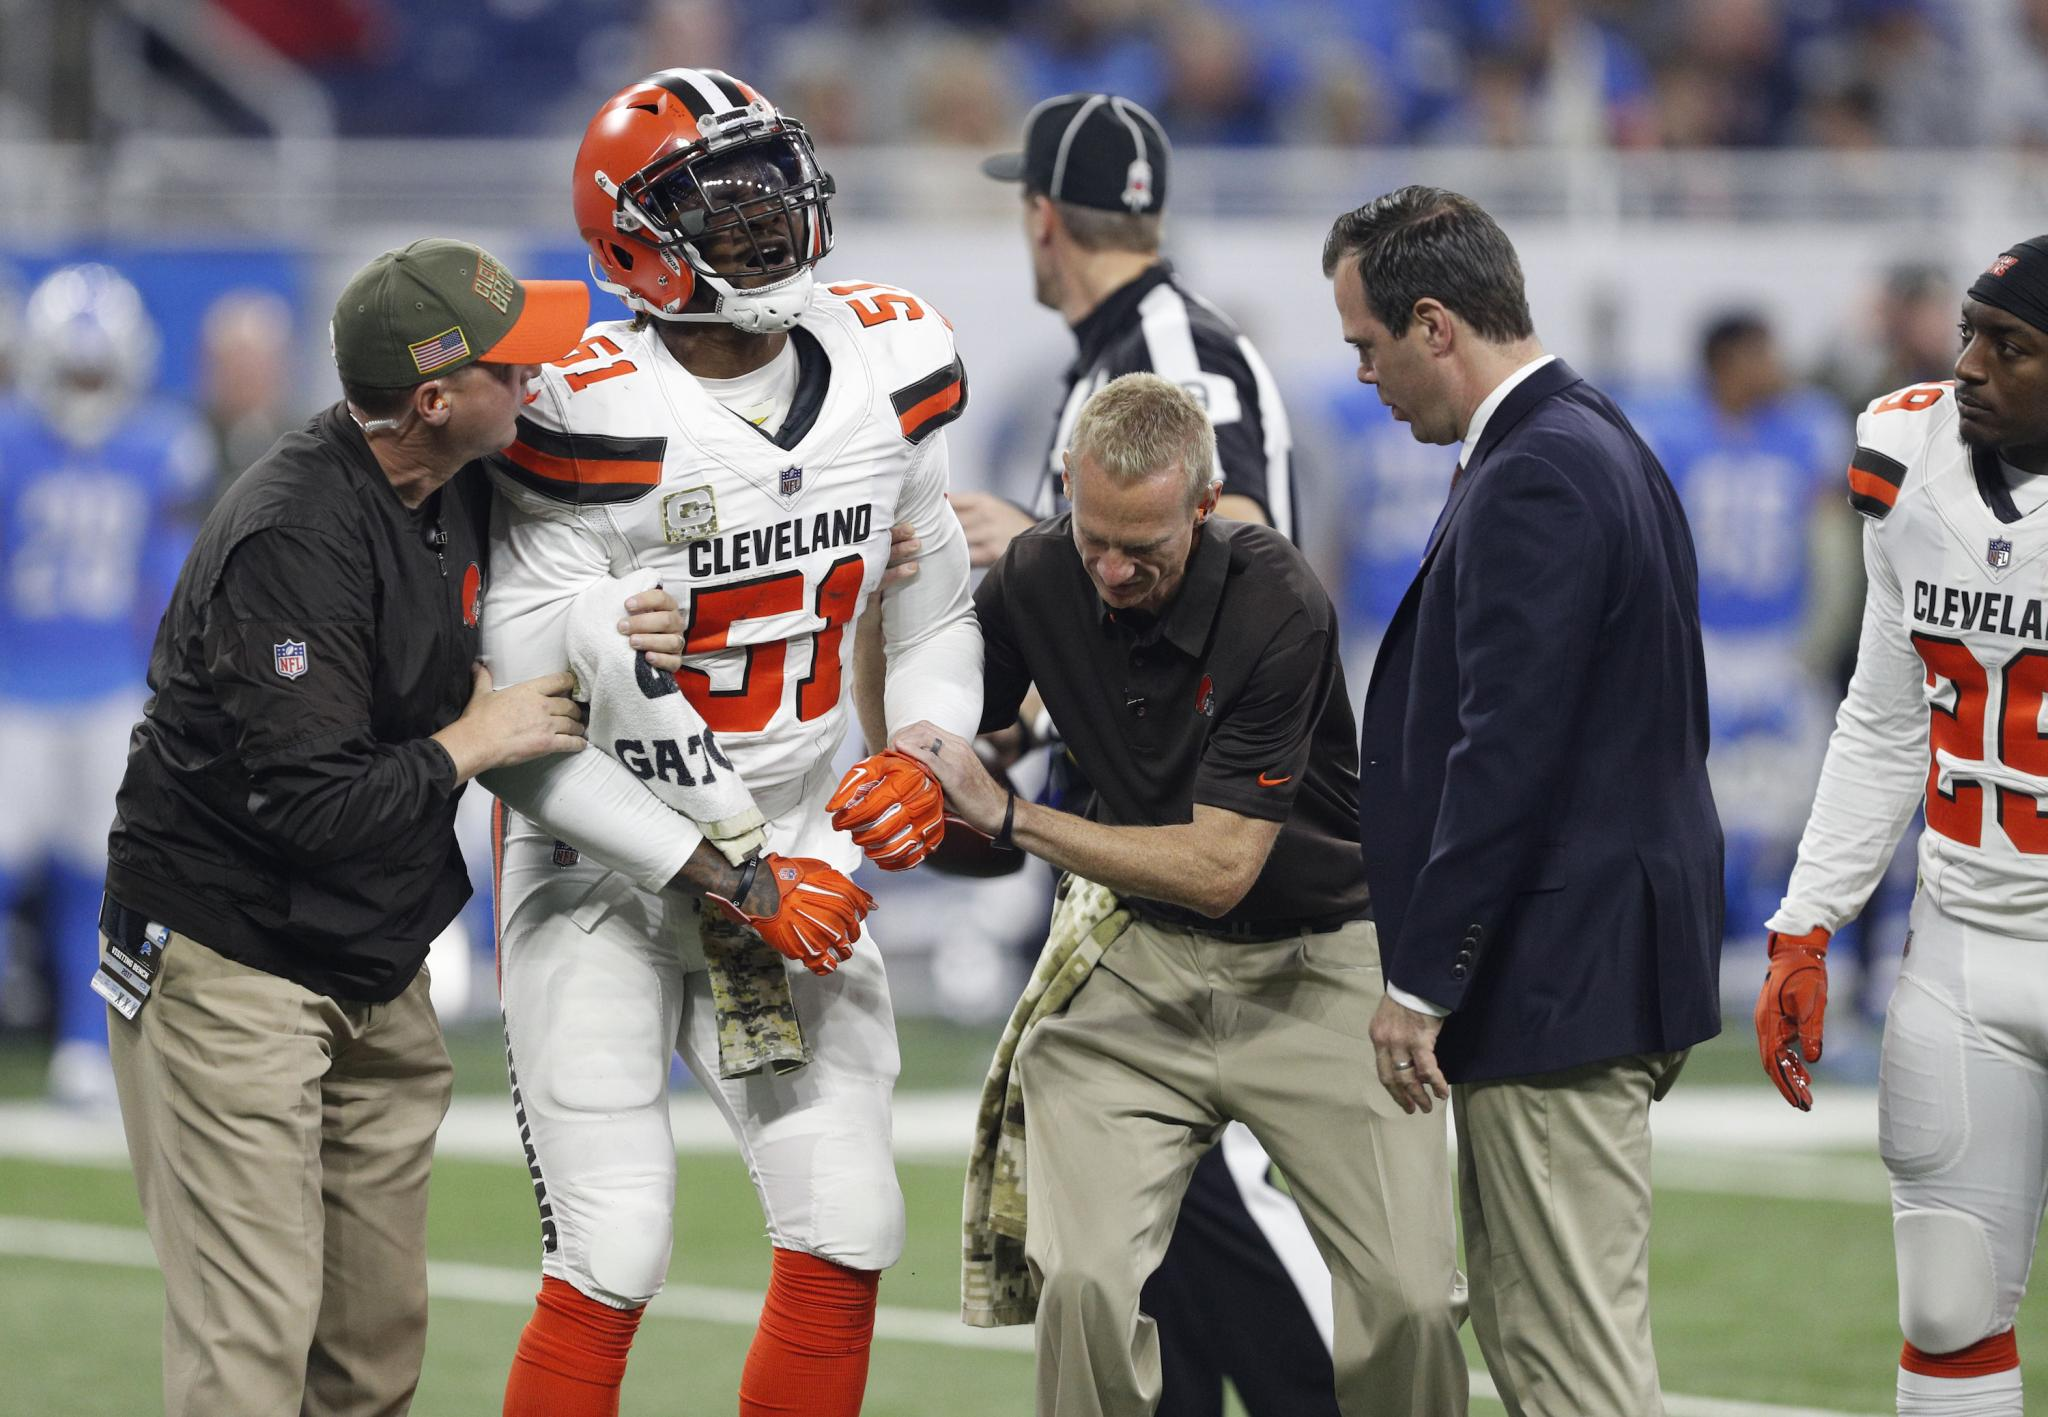 Ex Patriots LB Jamie Collins out for season with torn MCL